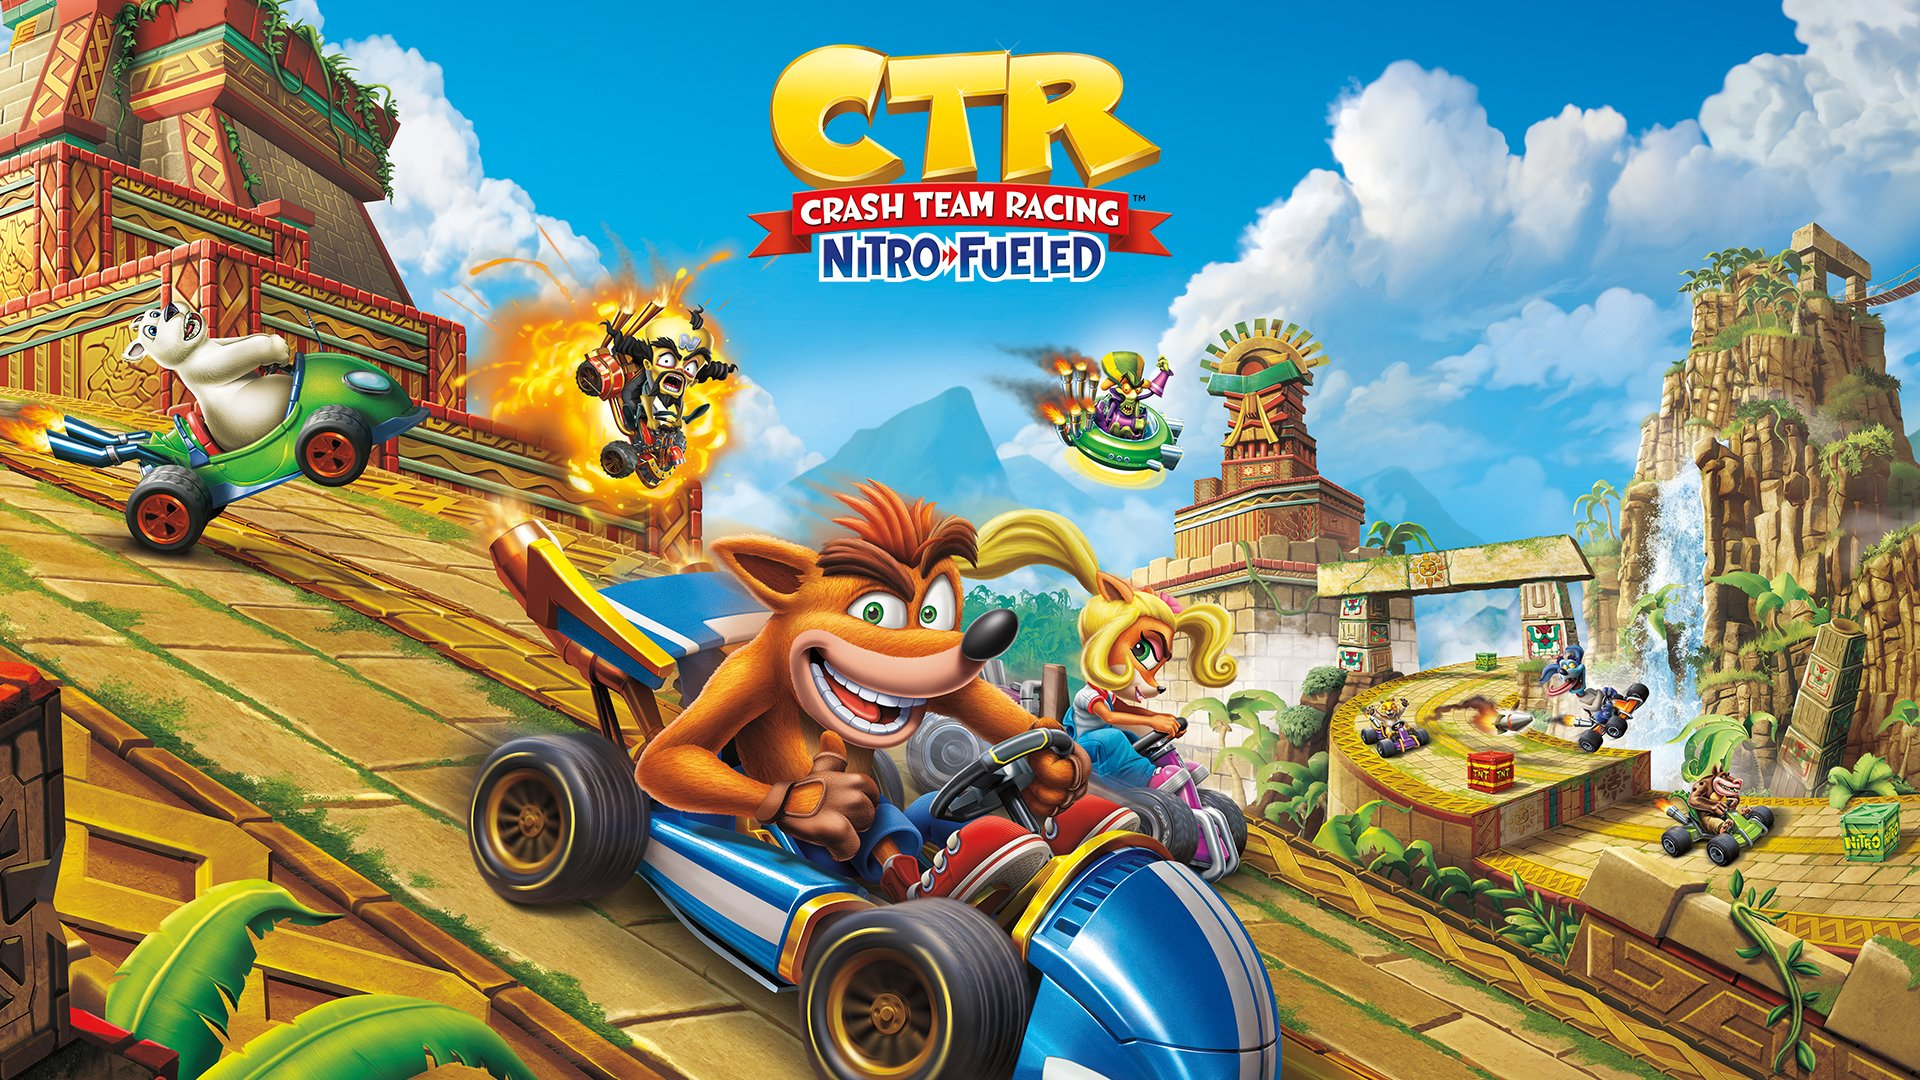 Crash Team Racing Nitro Fueled 04 24 19 001